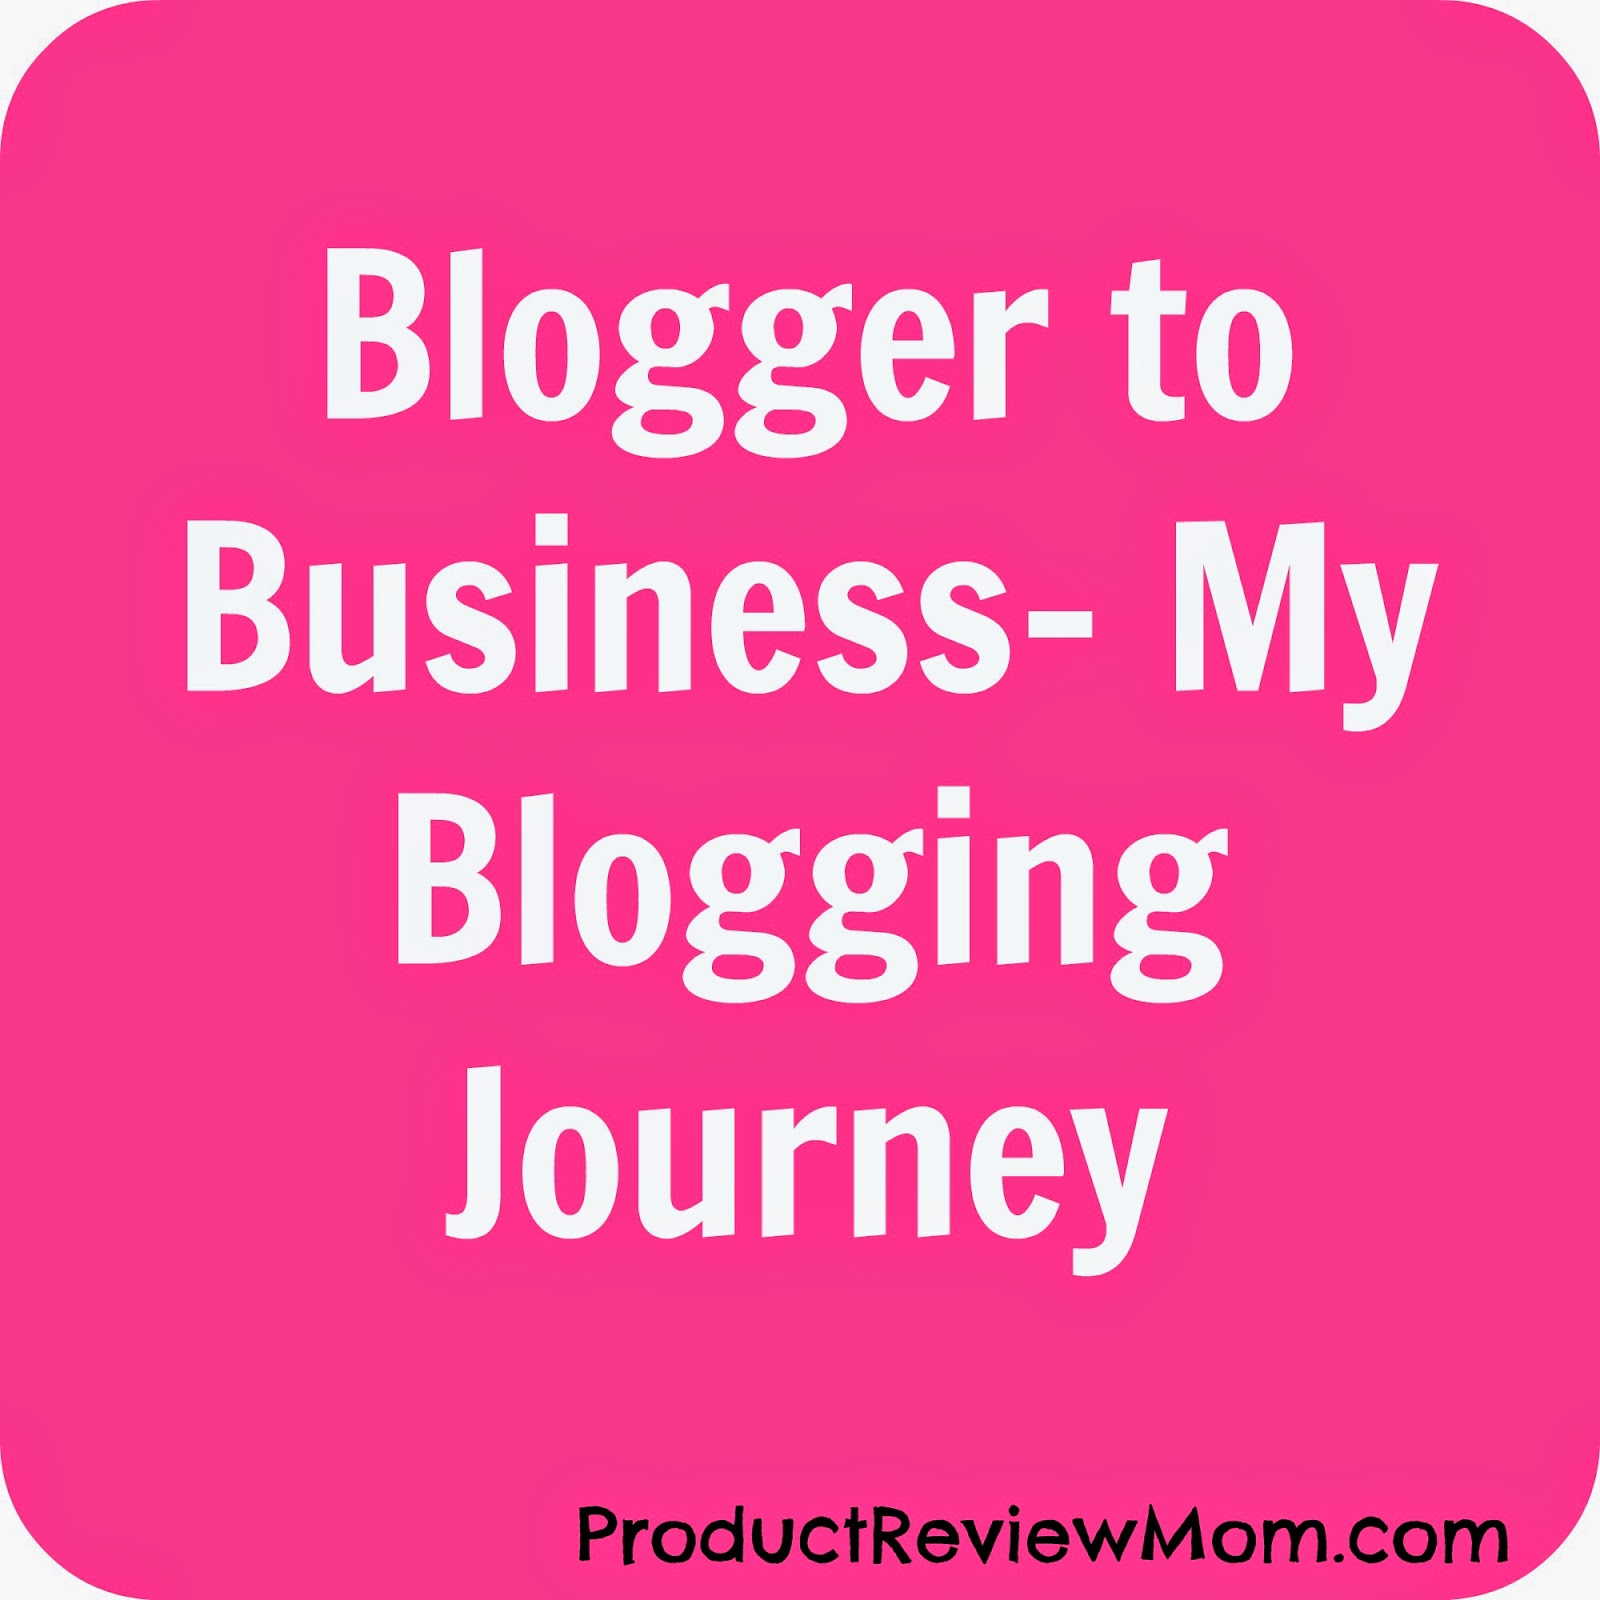 Blogger to Business- My Blogging Journey #BloggertoBusiness via www.Productreviewmom.com